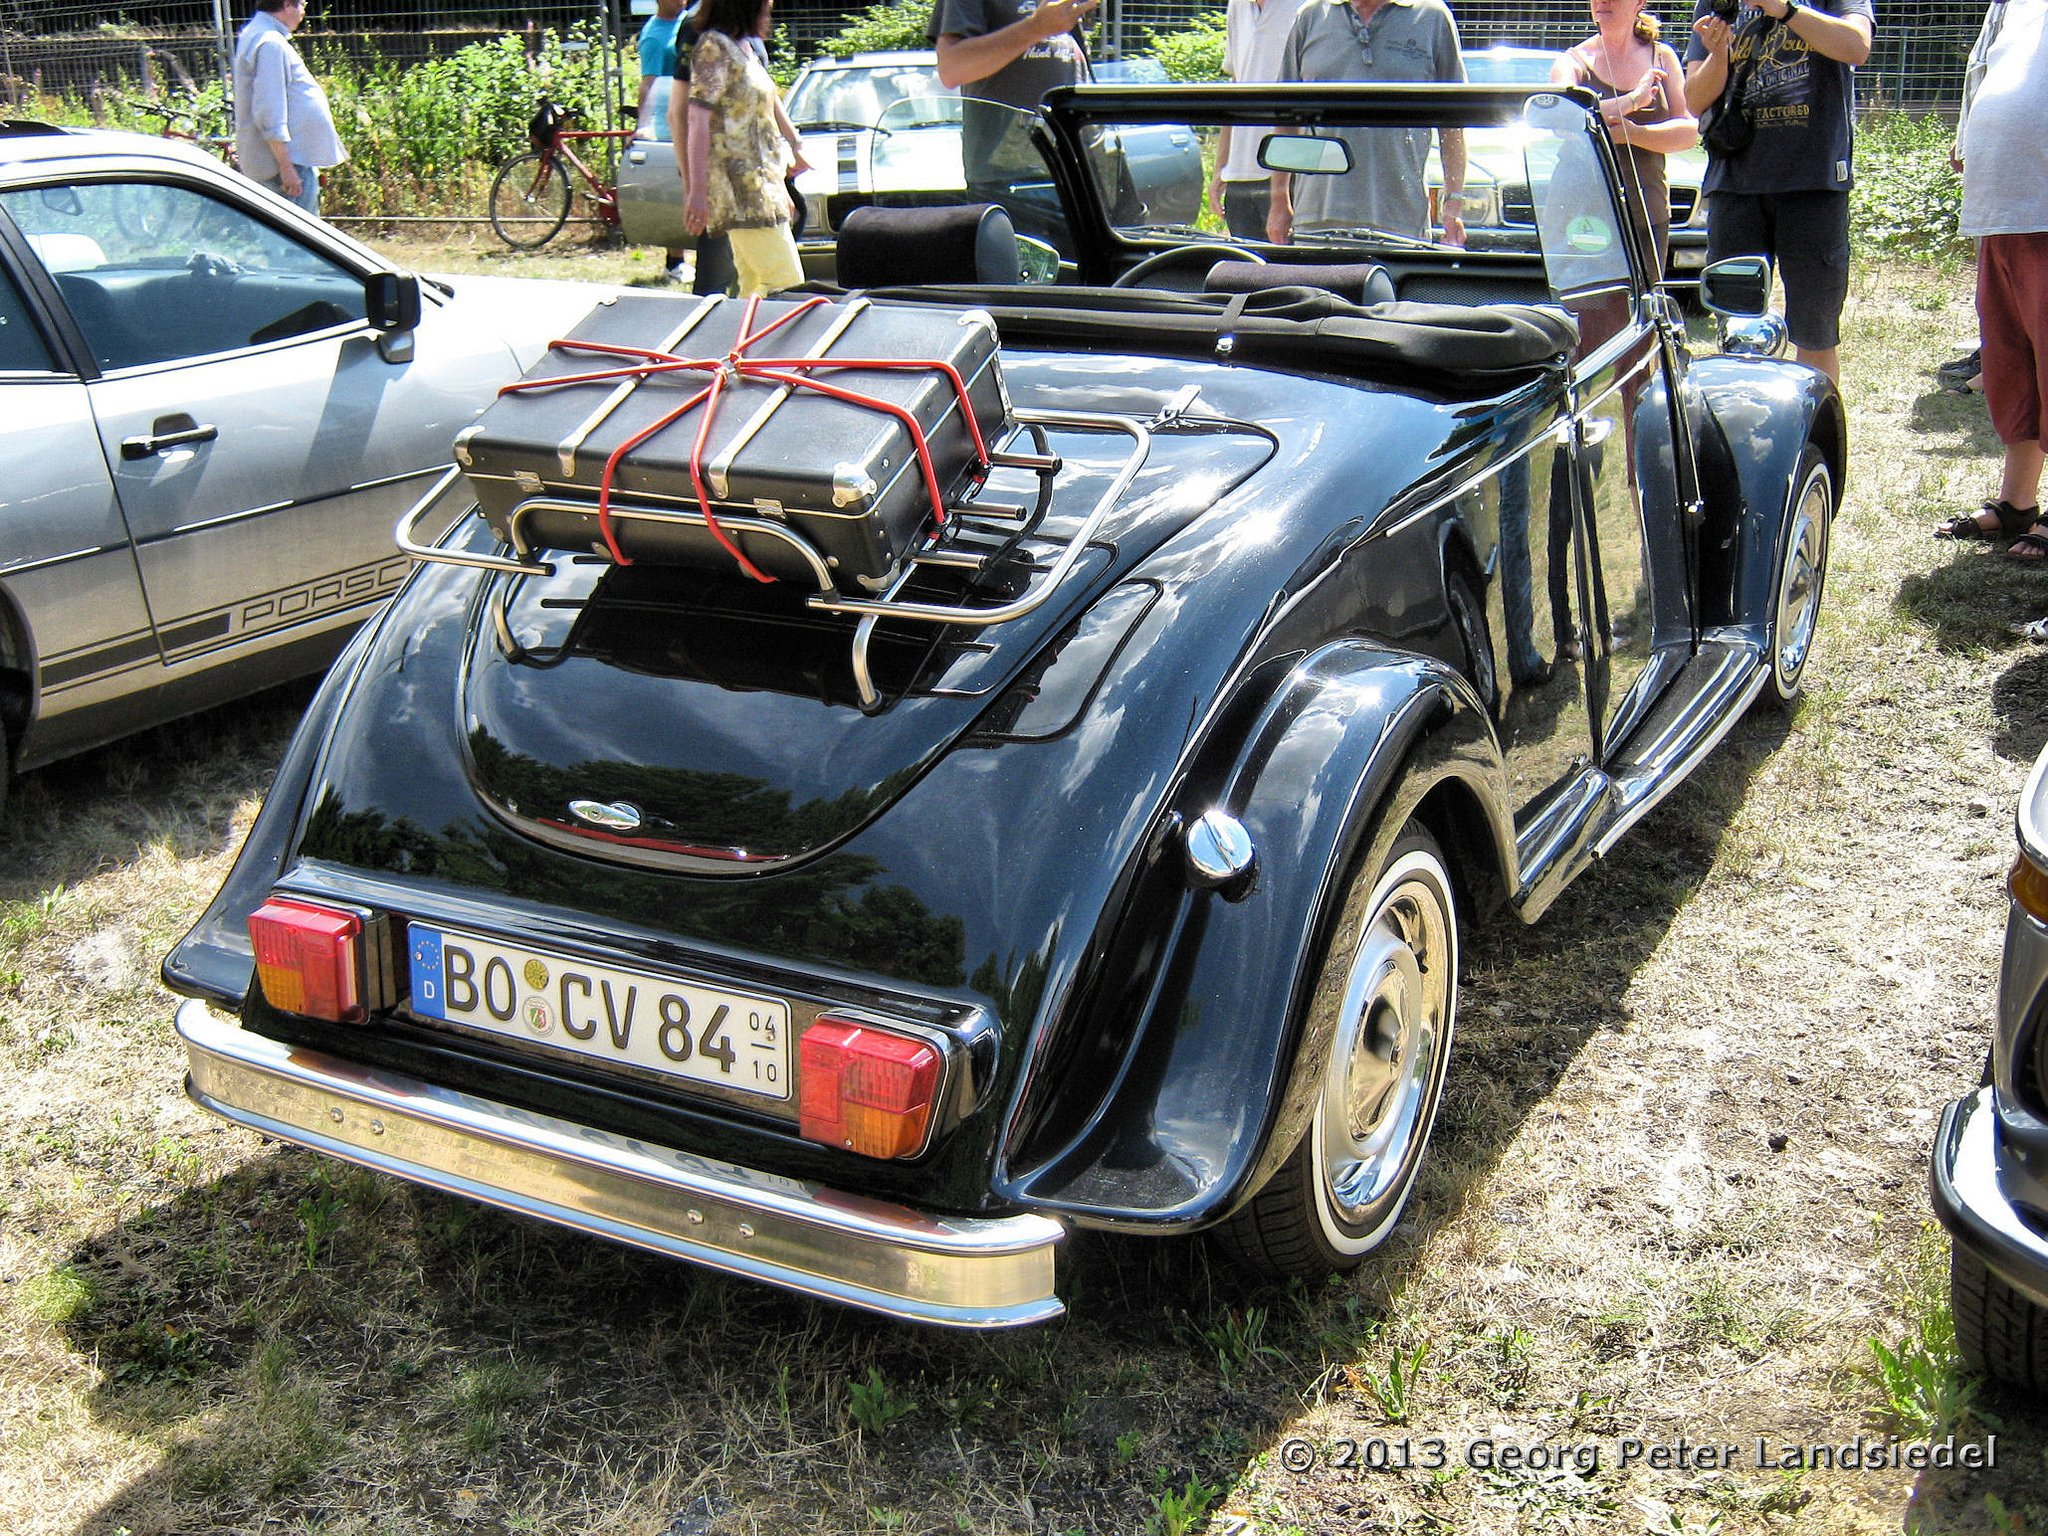 2cv citroen classic cars french cabriolet convertible wallpaper 2048x1536 591008 wallpaperup. Black Bedroom Furniture Sets. Home Design Ideas